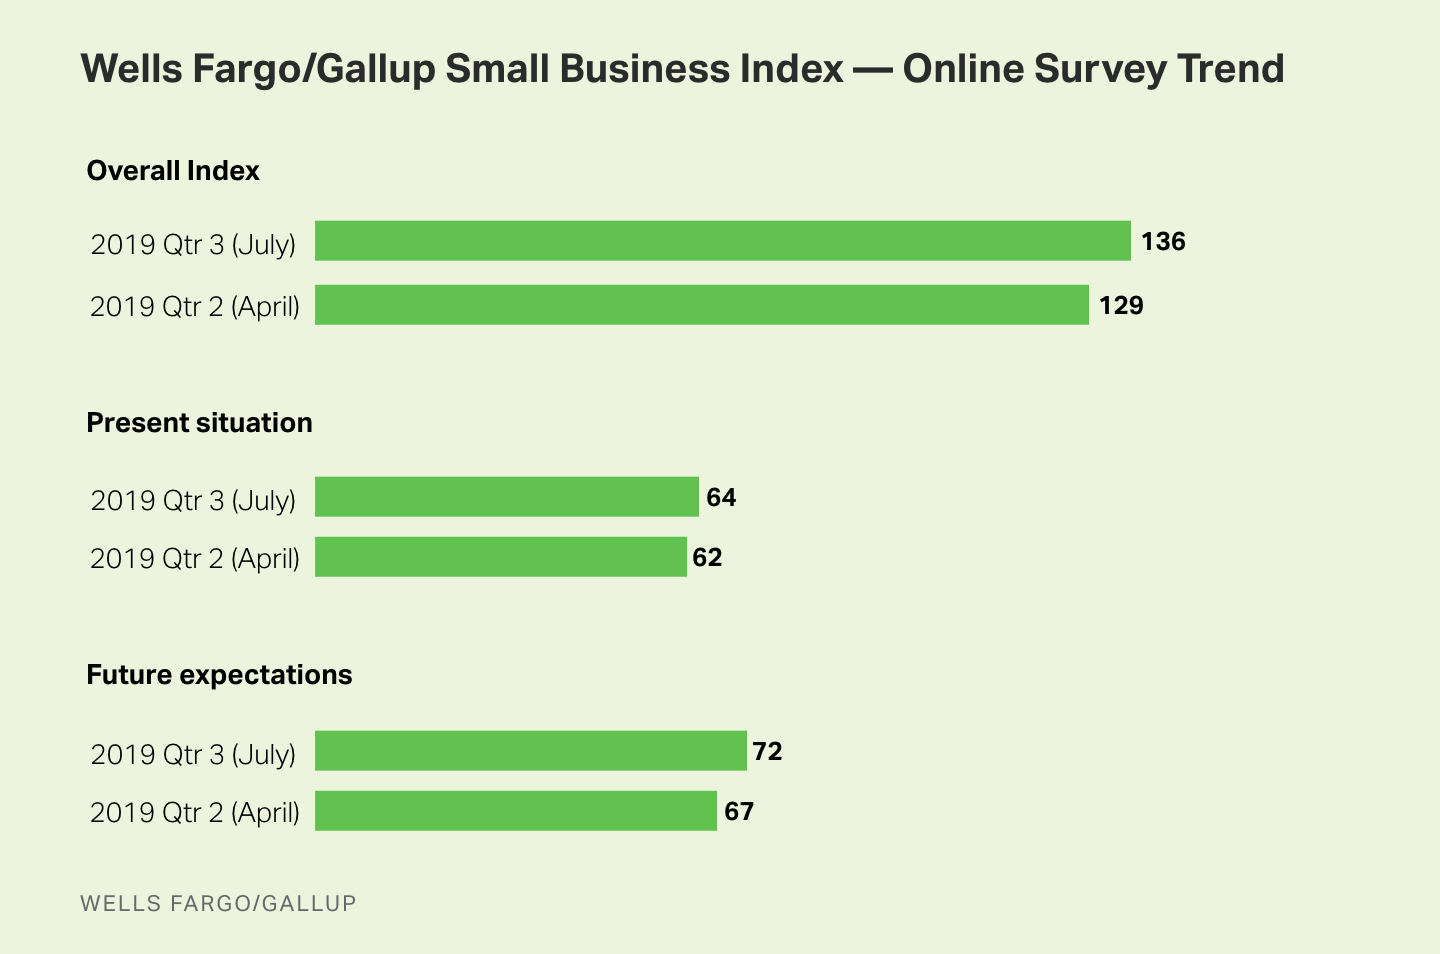 Bar graph. Wells Fargo/Gallup Small Business Index for April, July 2019. Index is at 136 for July, up 7 points from April.